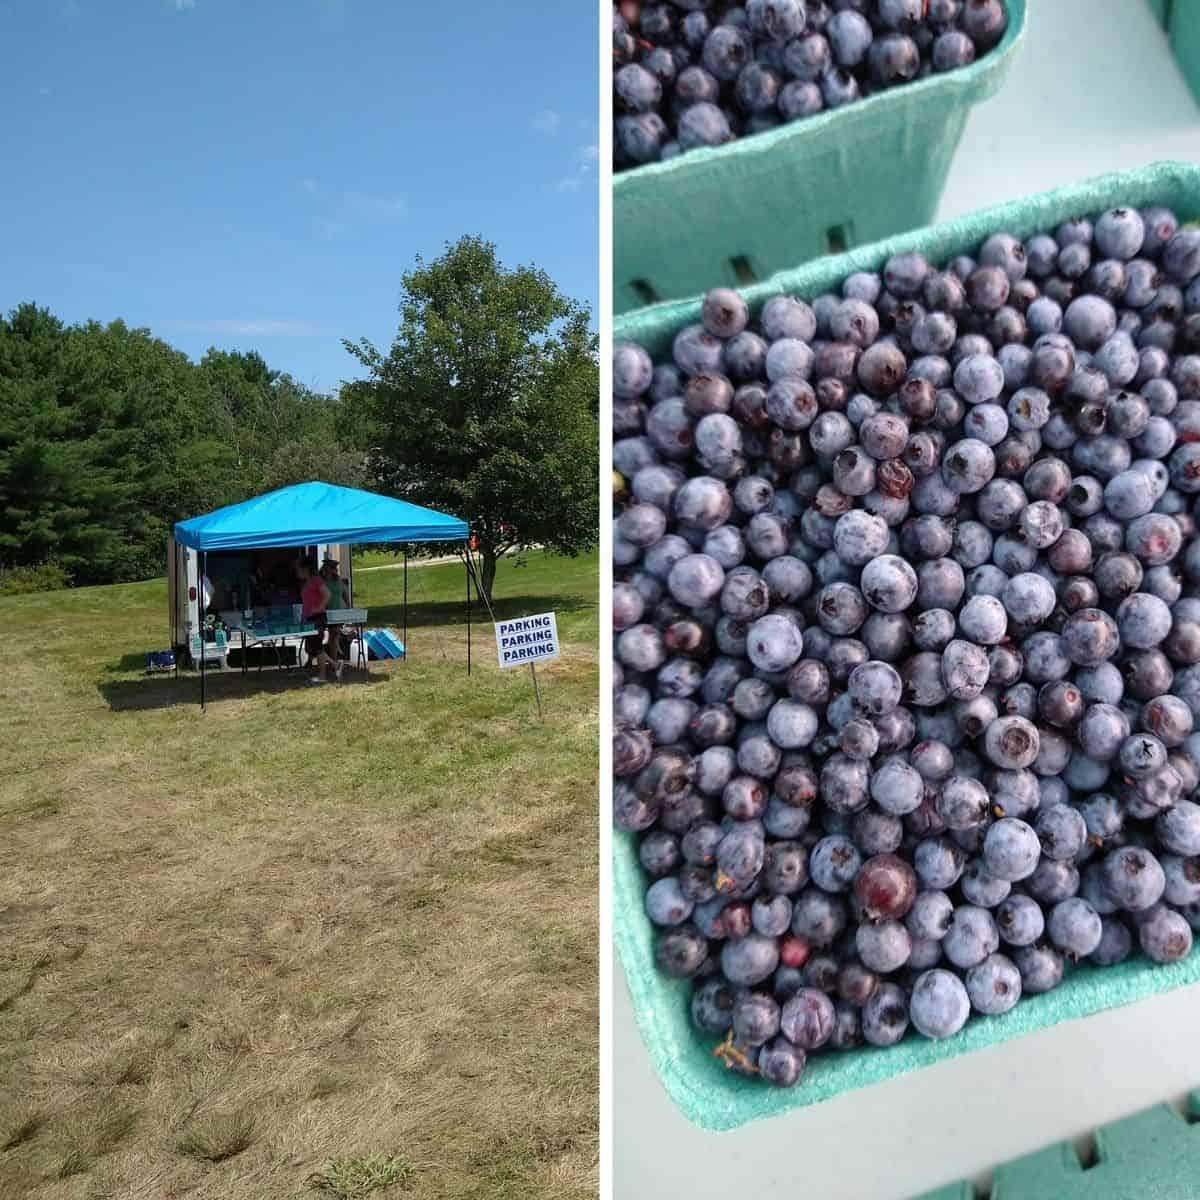 A collage featuring a road side stand selling blueberries in a empty lot on the left and a quart of wild blueberries on a table on the right.